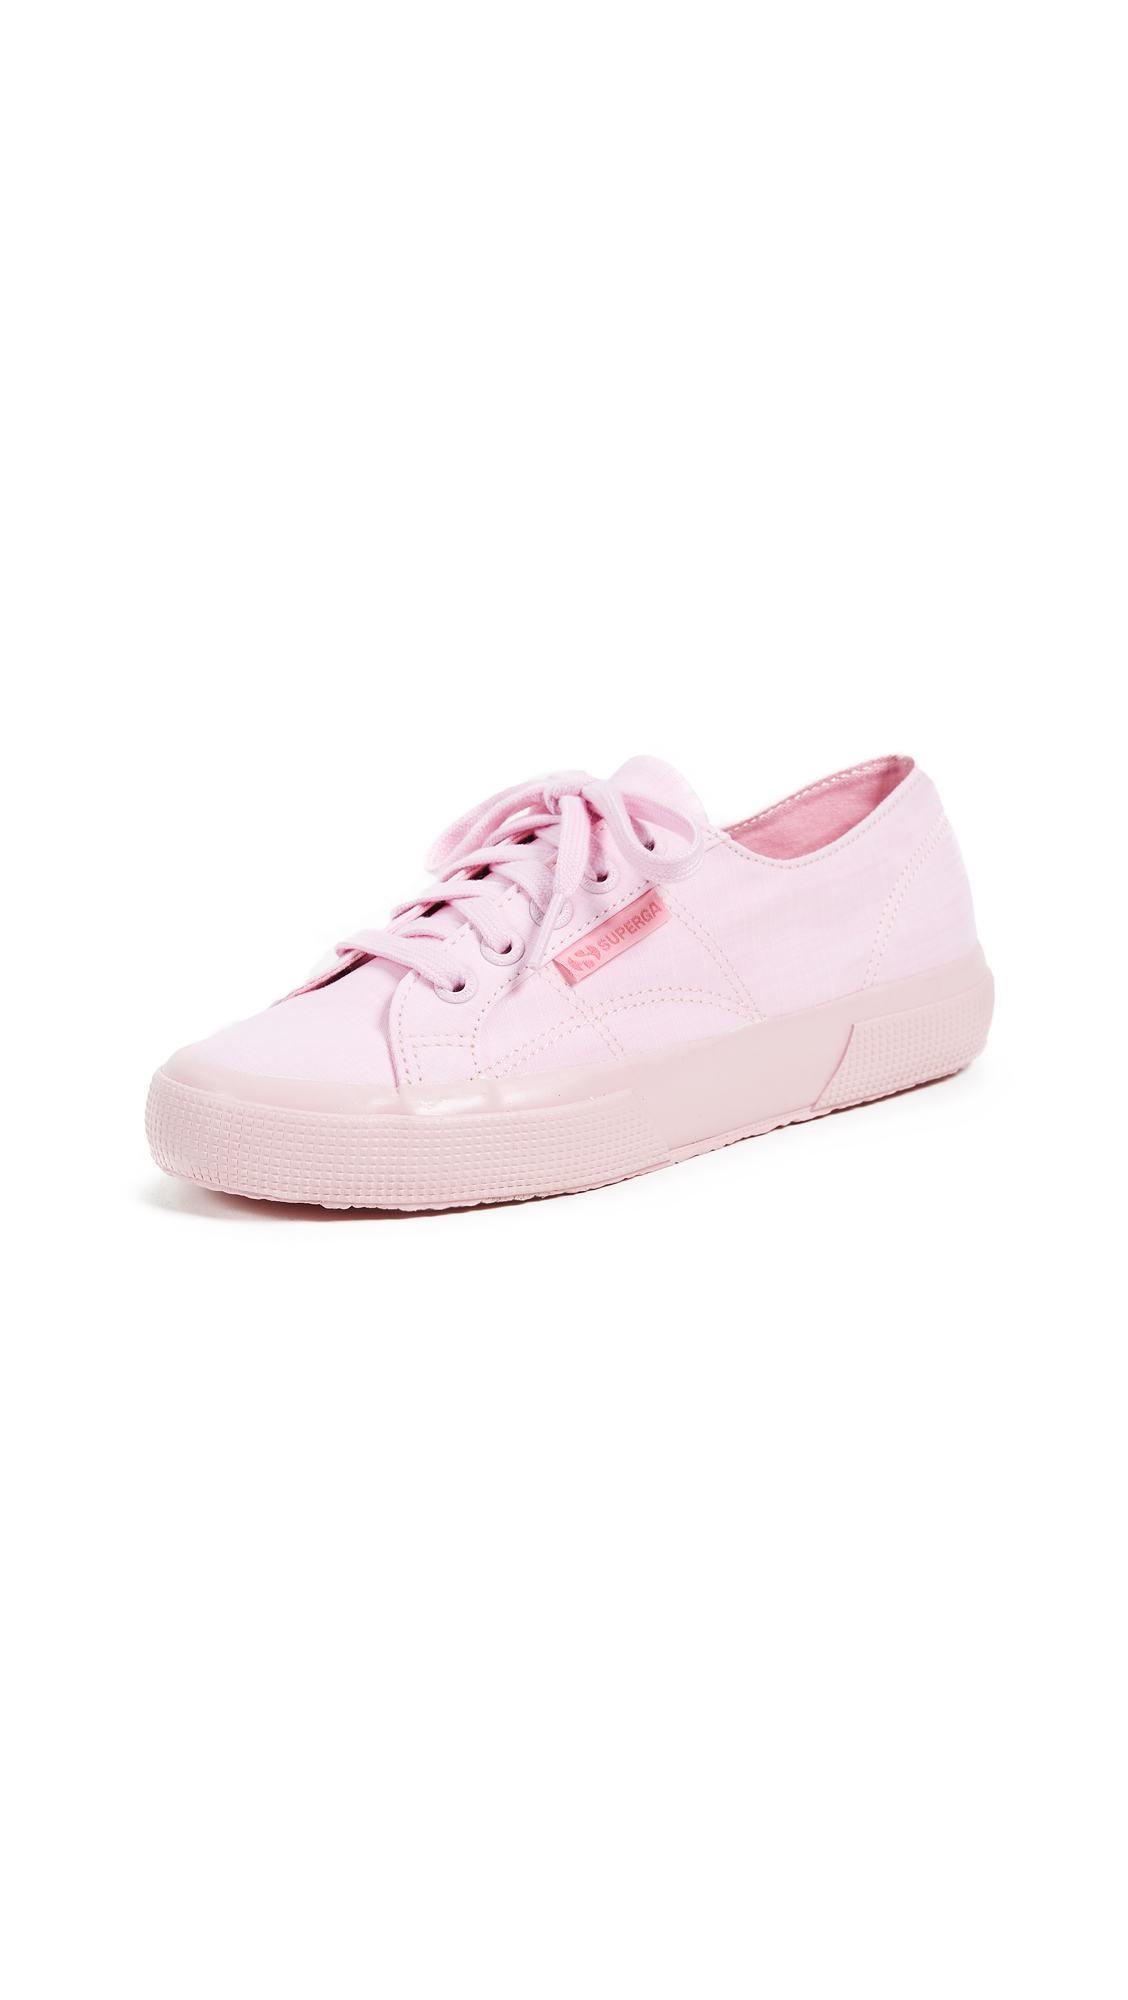 Superga 2750 Cotton Melangu Sneakers In Pink